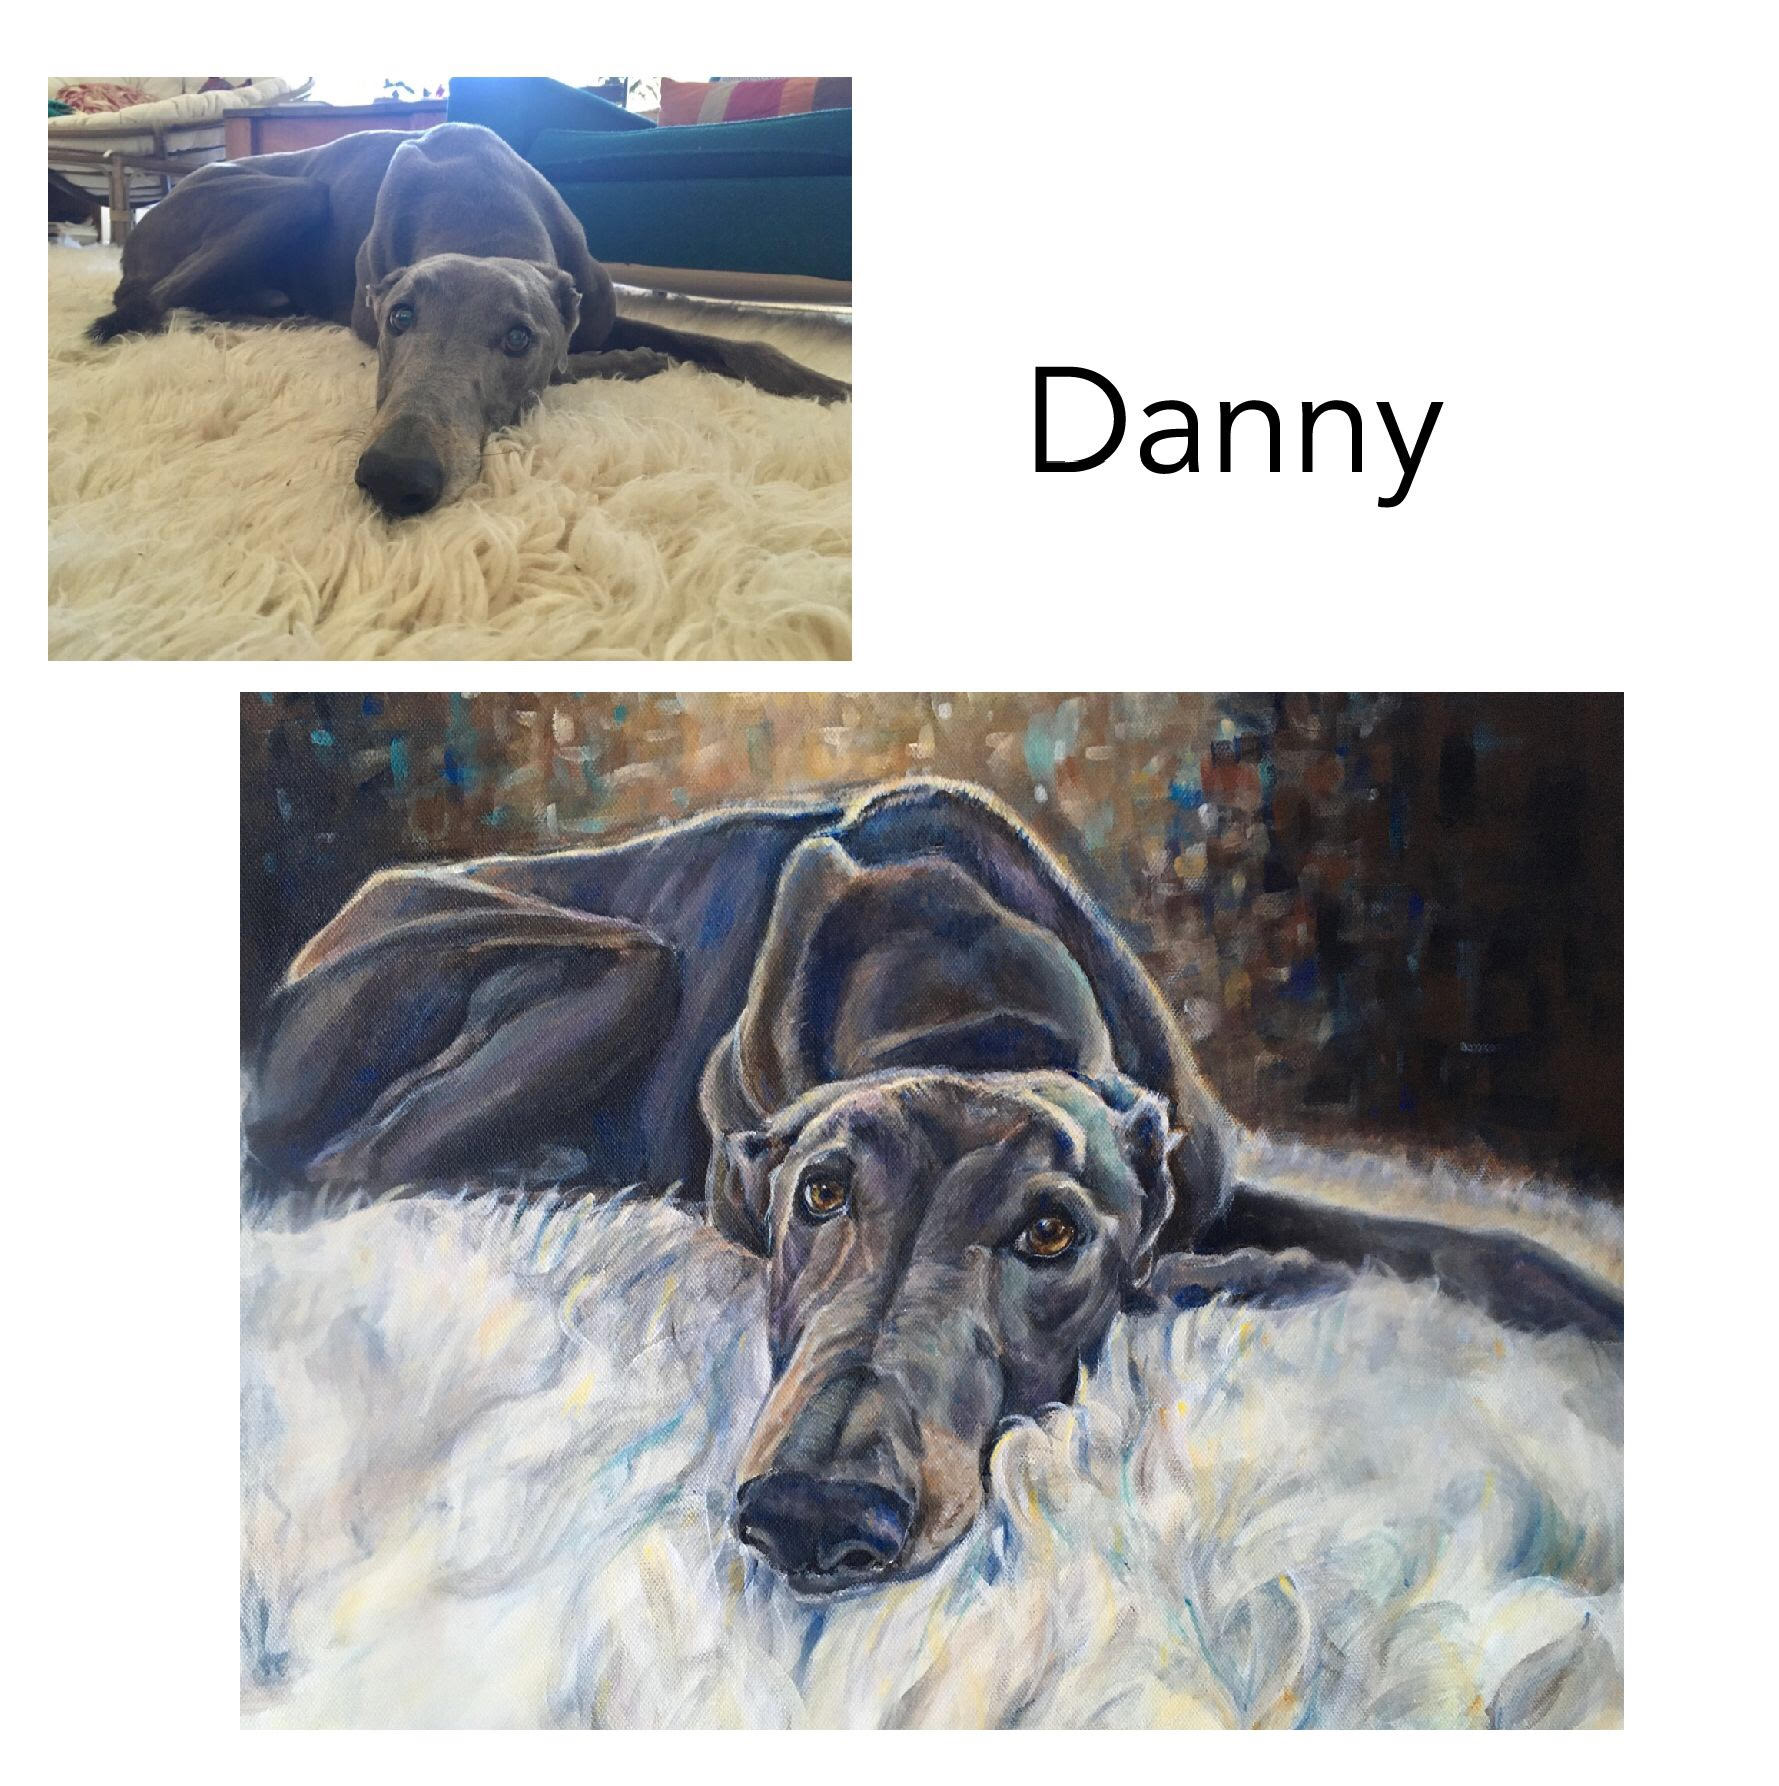 """Greyhound - Acrylic on Canvas 35.5cm x 45.70cm (14' x 18"""")Private CommissionValla, NSW———————————————————-Danny's life started out terribly in the greyhound industry.Luckily he now enjoys a life of love and luxury. Here he is doing one of his favourite activities on his favourite shaggy rug."""